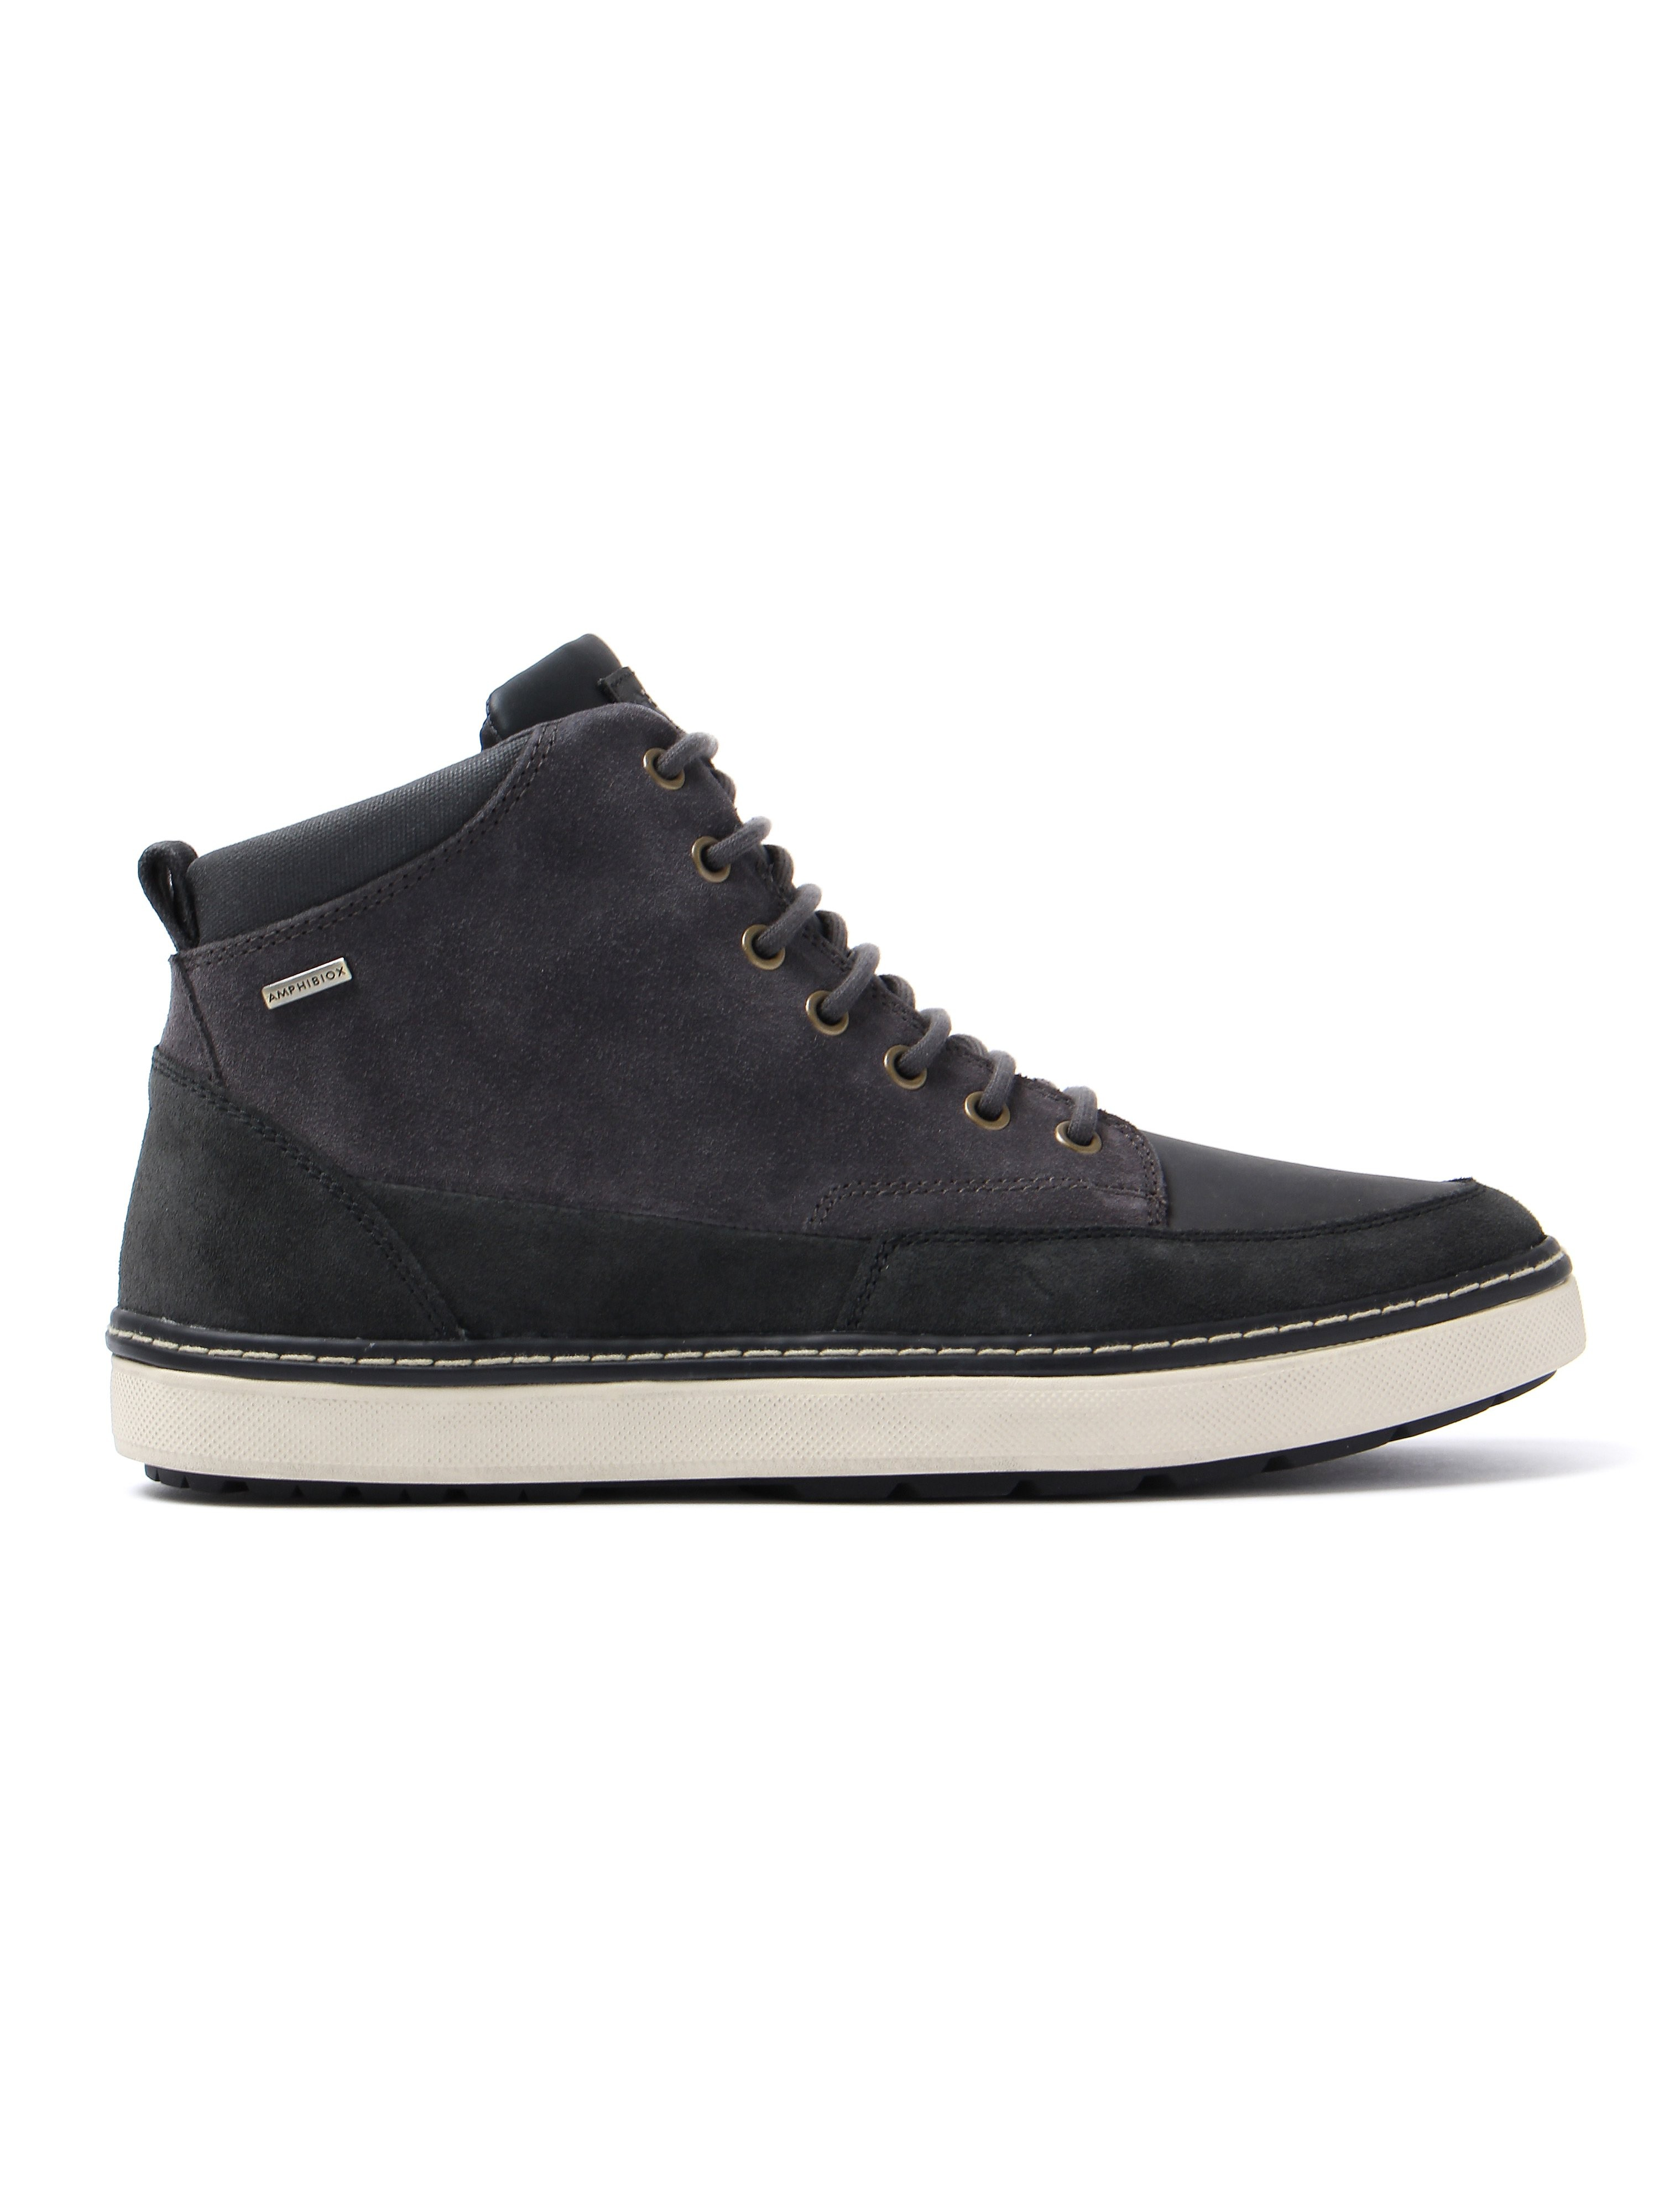 Geox Men's Mattias Abx Trainers - Anthracite Suede